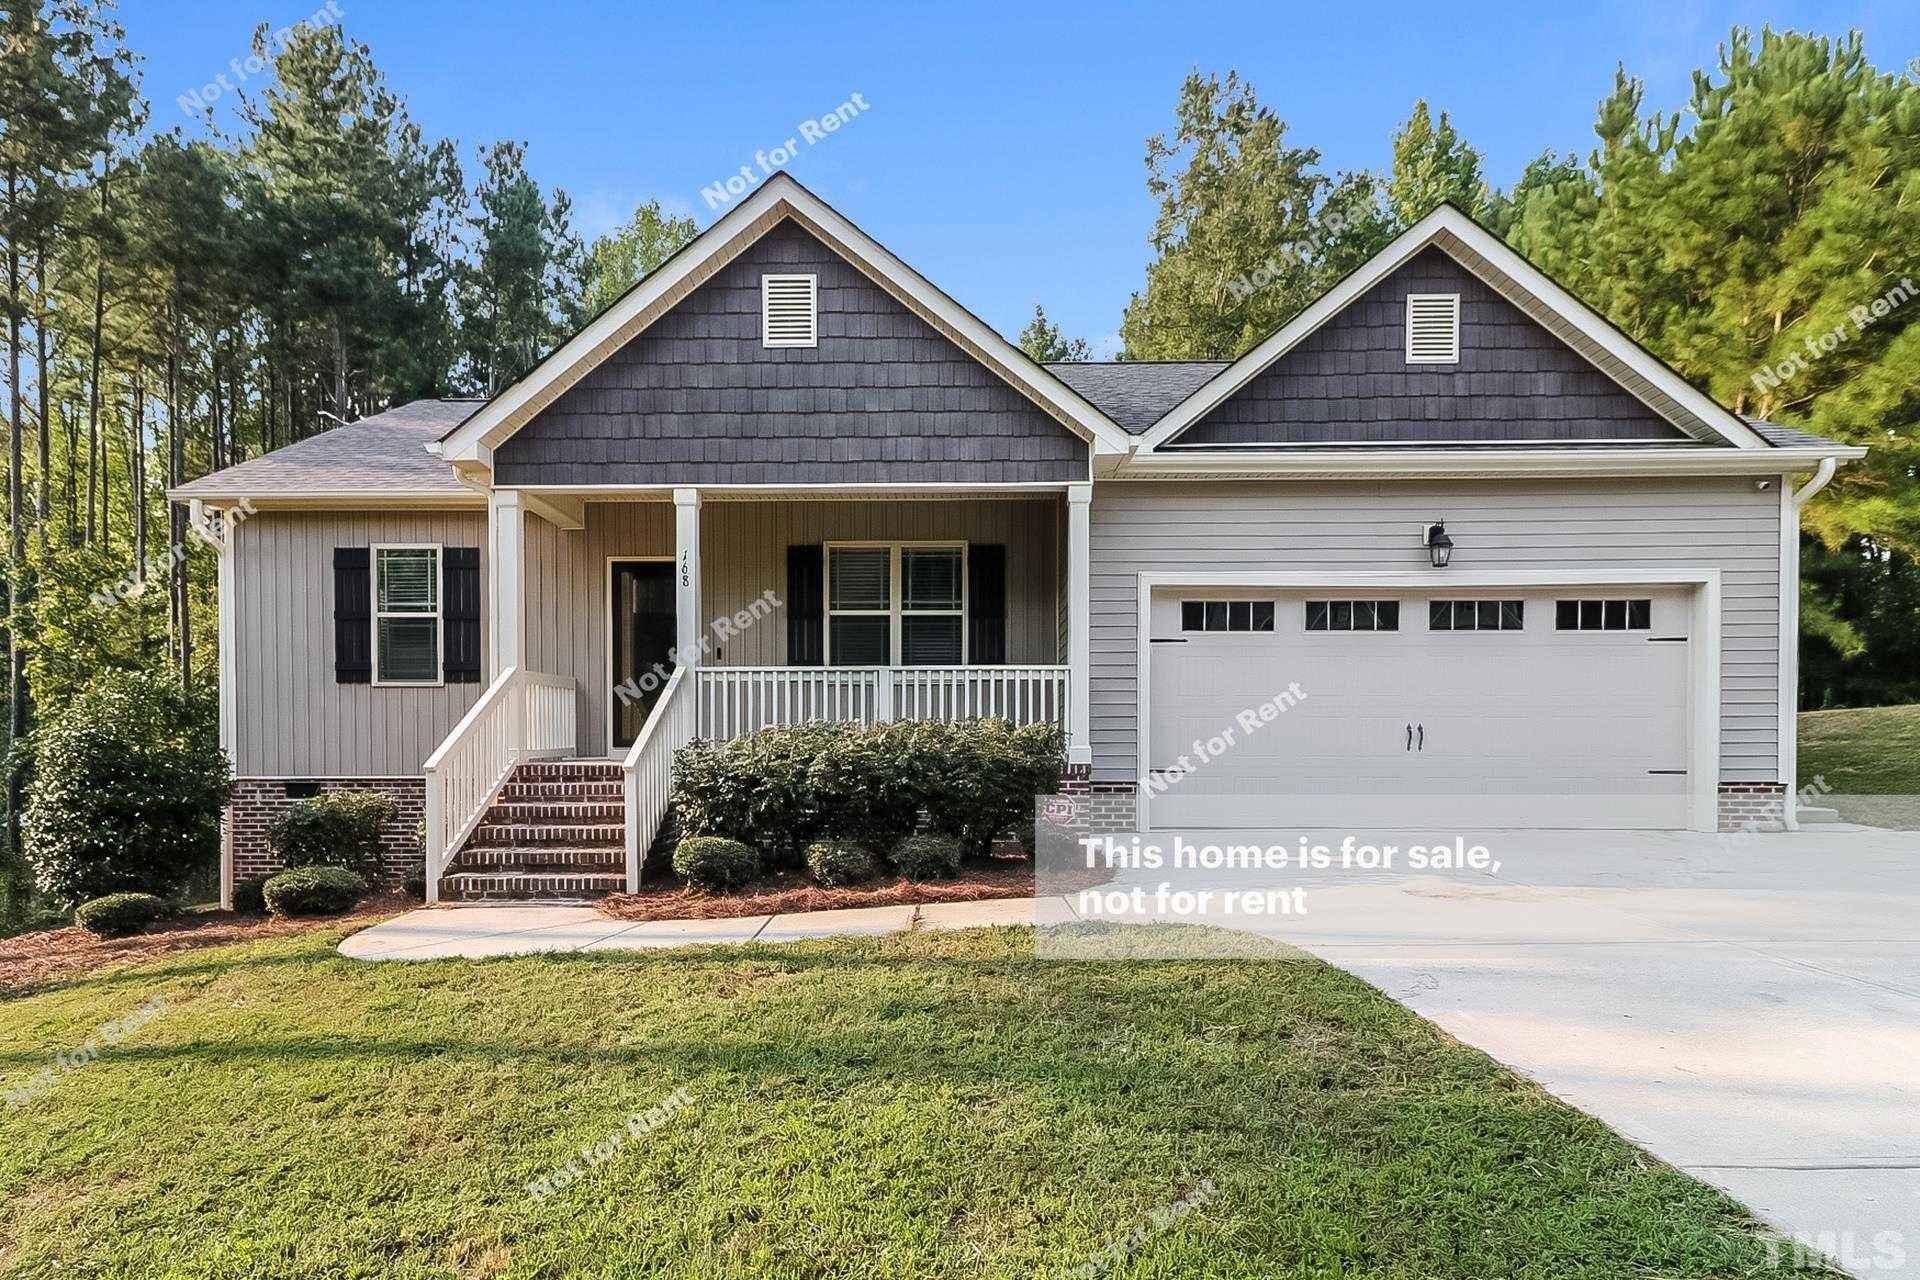 $353,000 - 3Br/2Ba -  for Sale in The Preserve At Cedar Creek, Wendell